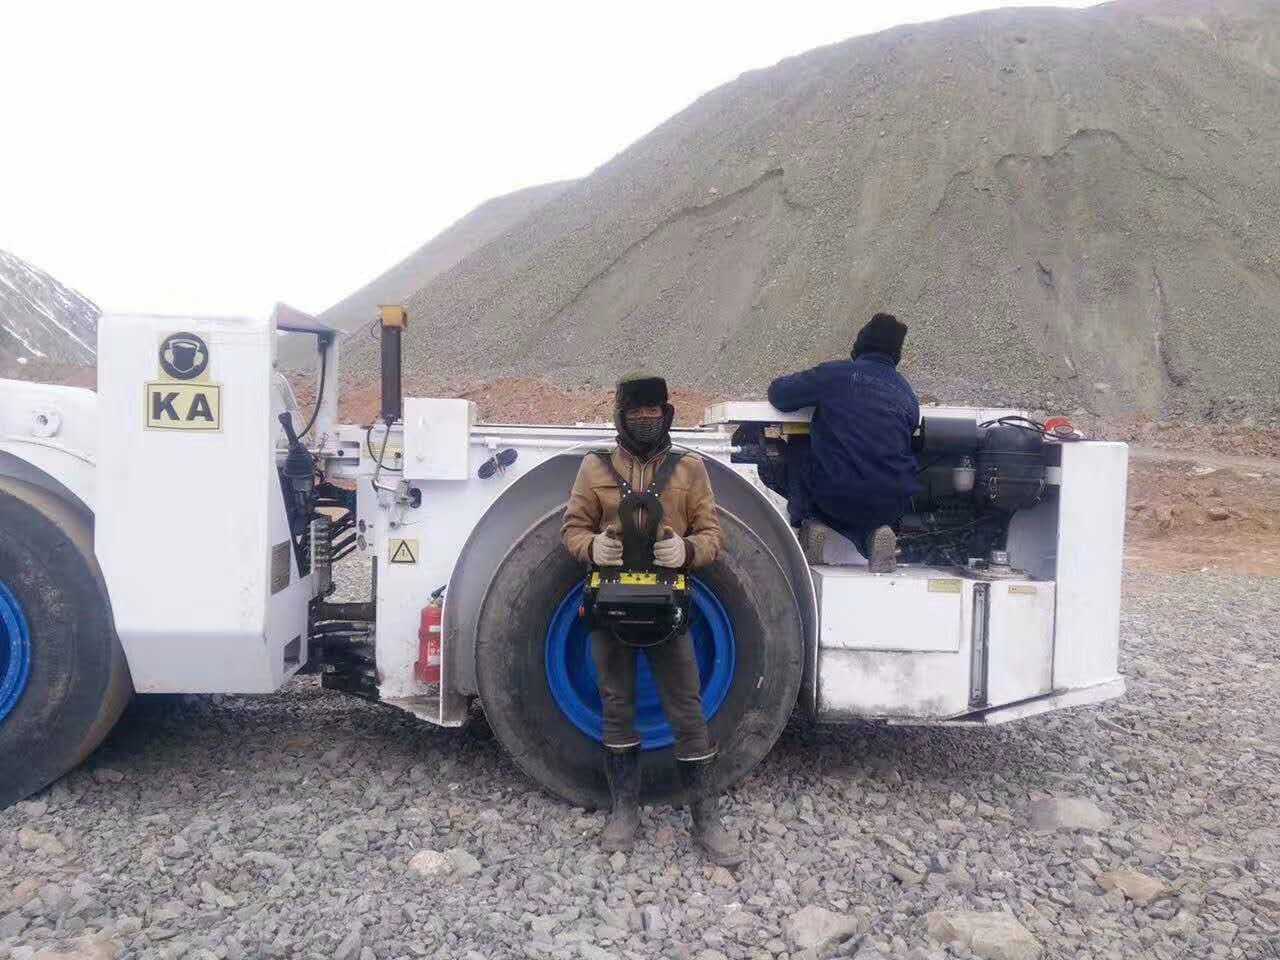 Remote control mining equioment_radio remote _control system__LHD loader_line of sight_underground mining_loader_HOT Mining_kyle3